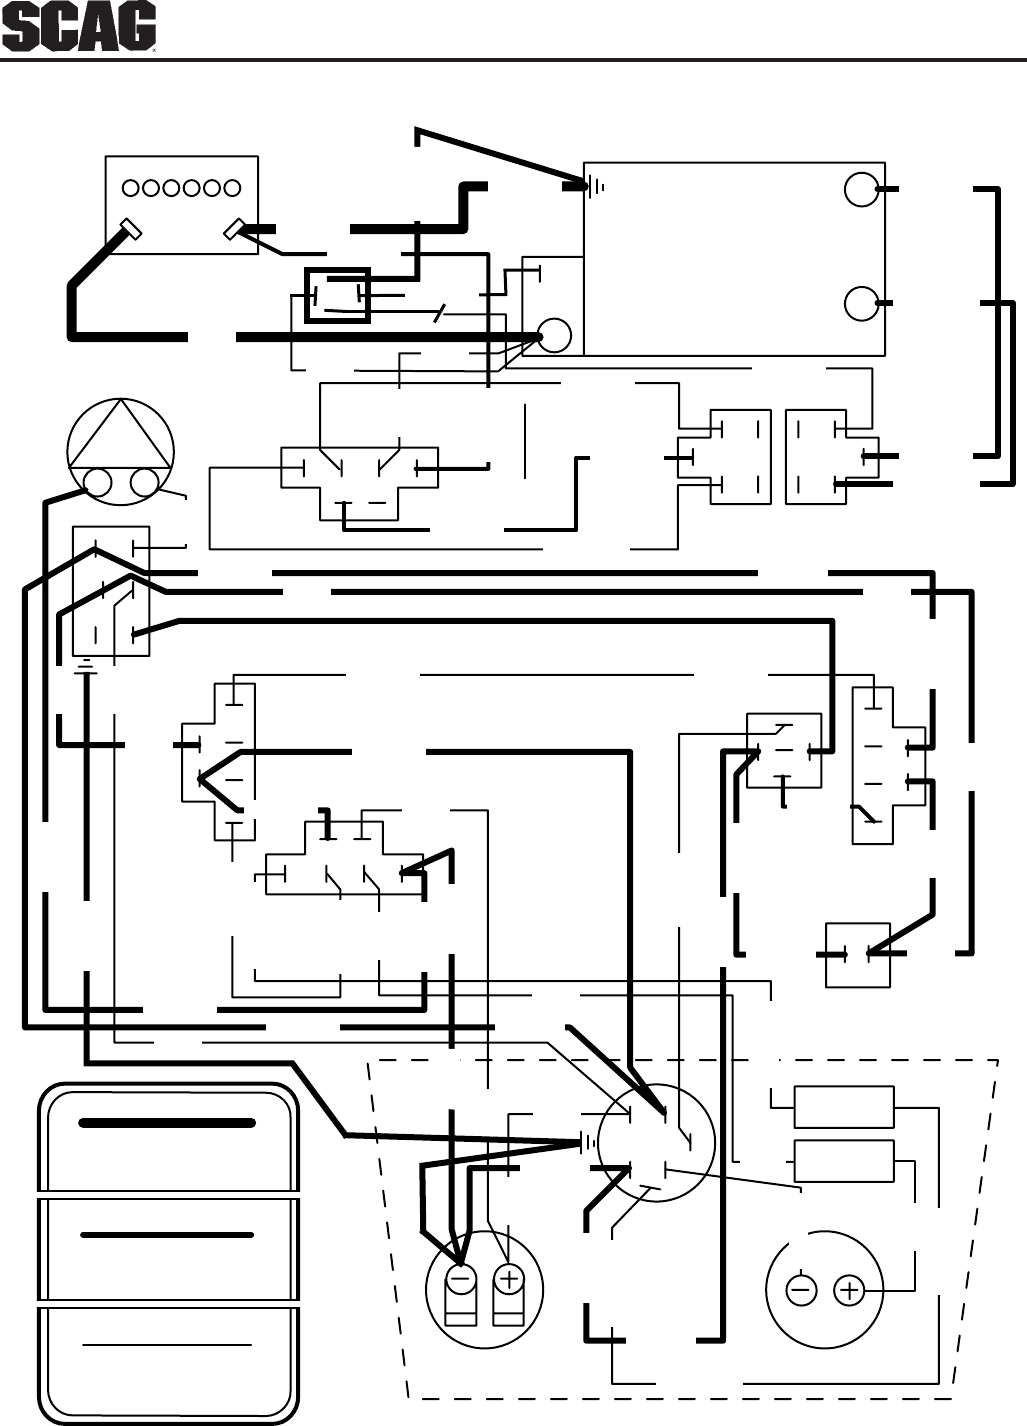 b9ce615b 020e 4d78 97db 0a4906c05276 bg22 scag wiring diagram on scag images free download wiring diagrams  at gsmportal.co